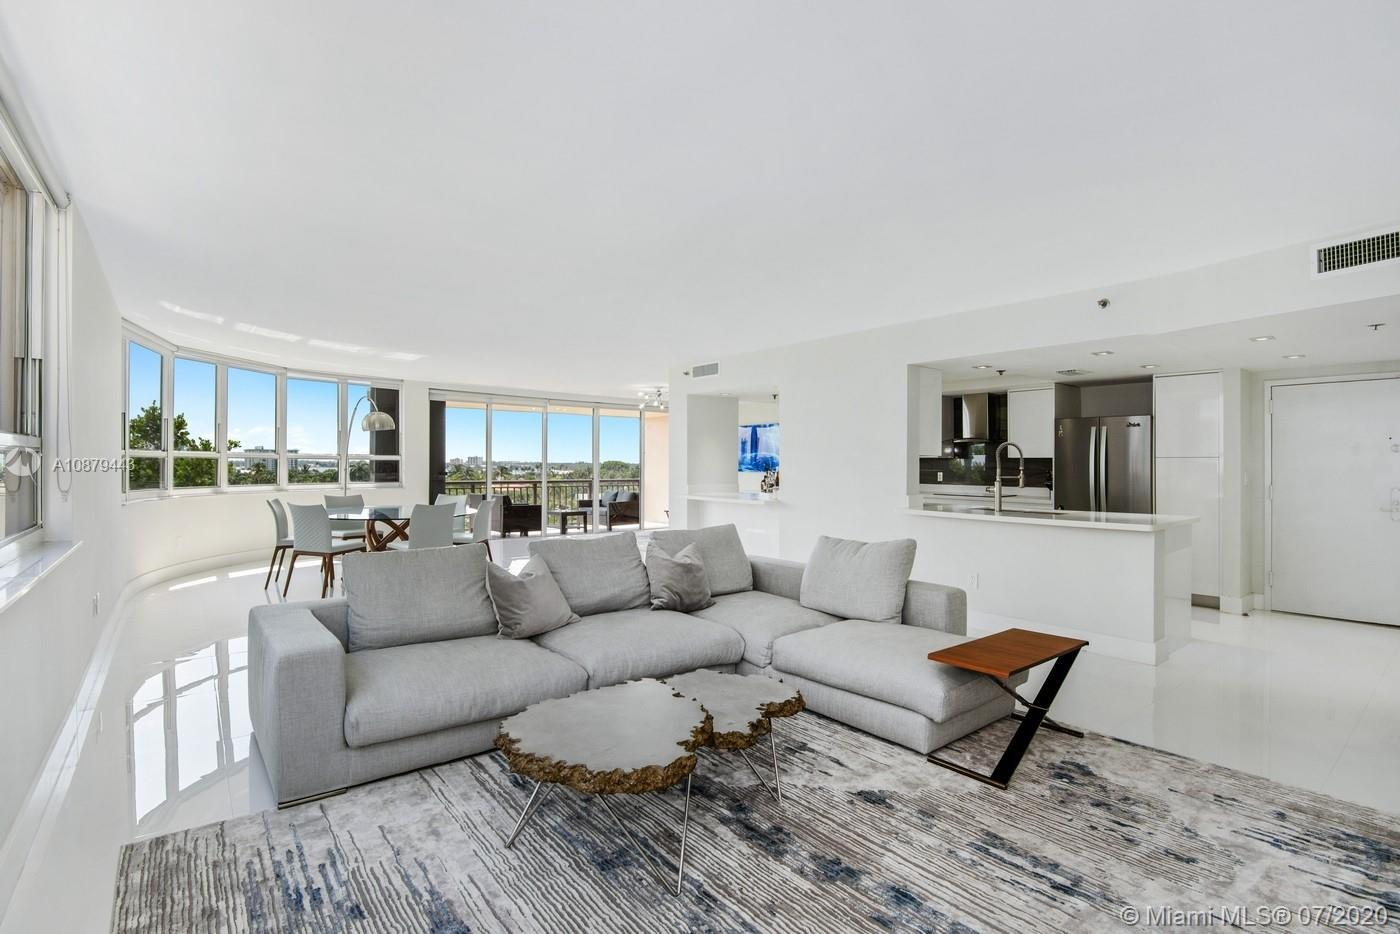 Welcome to a truly unique 2BR/2.5Bath home located in the exquisite Tiffany of Bal Harbour.  Find yo